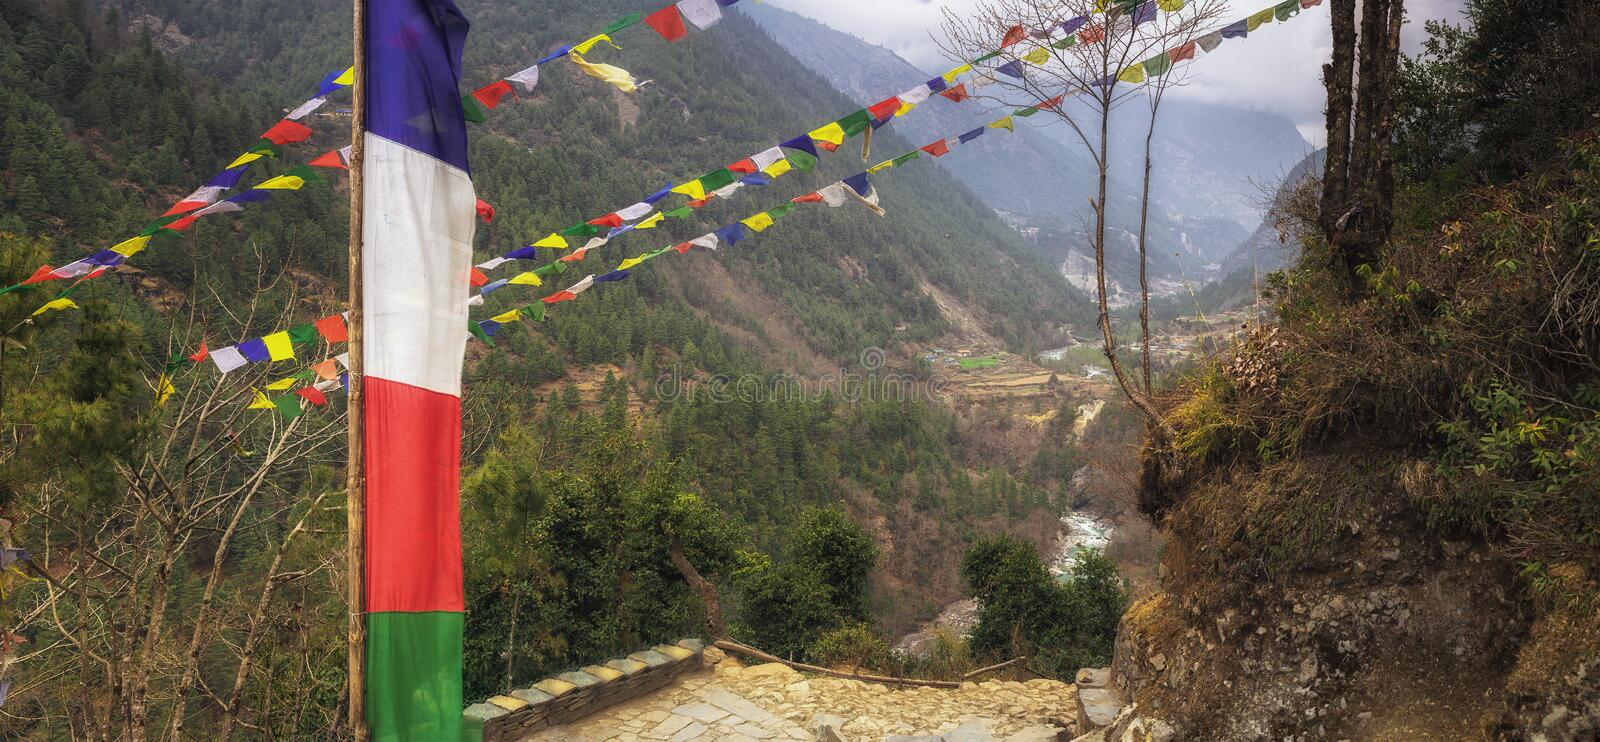 Nepal Trail in the Ewerest region stock photography